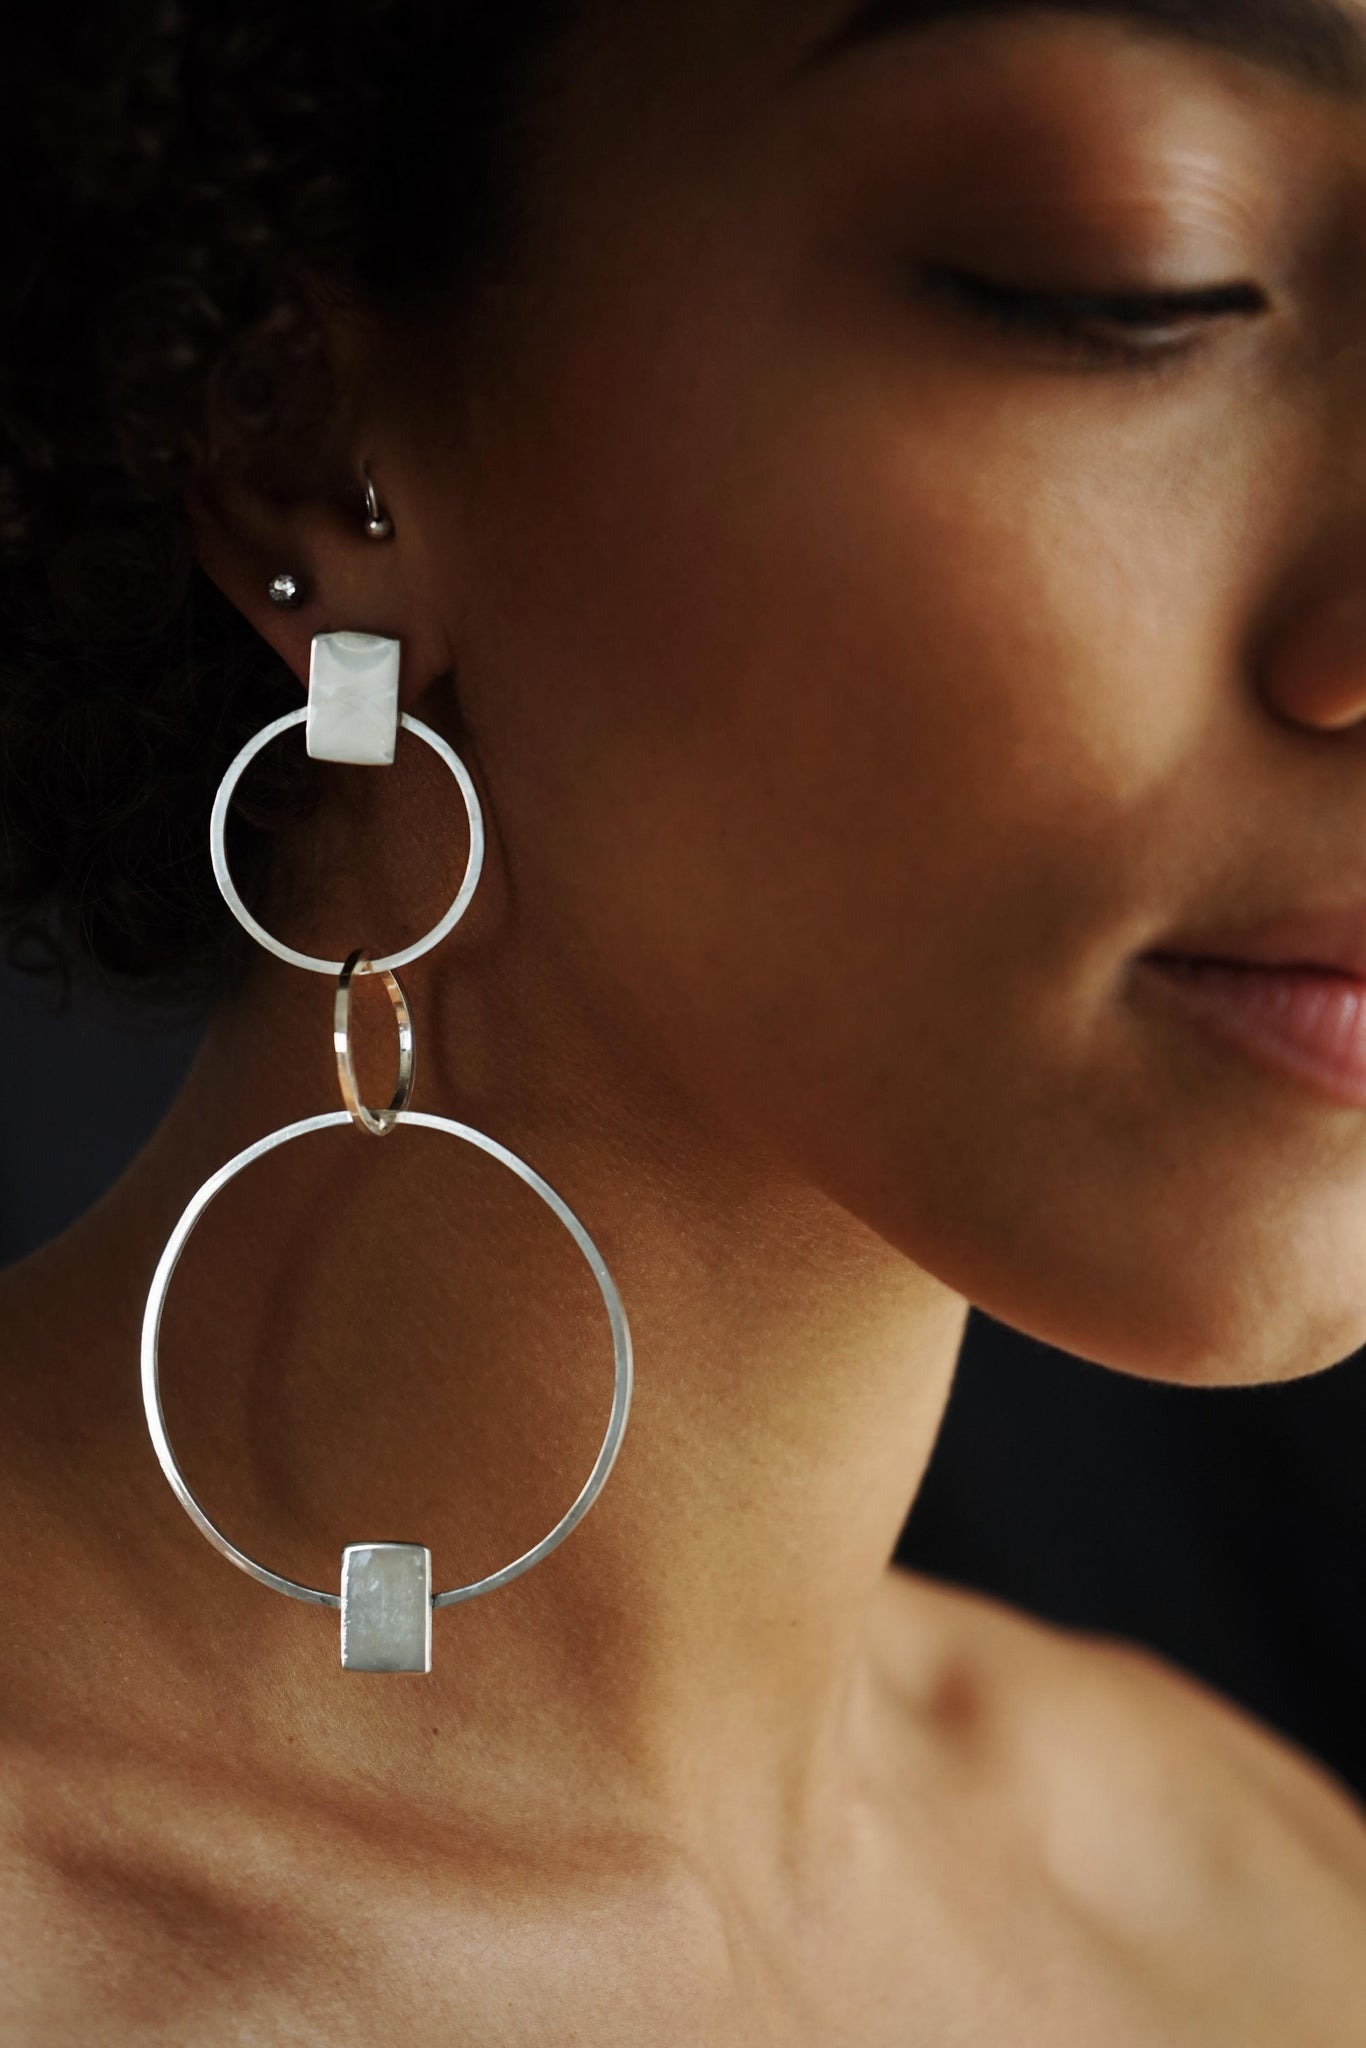 Powerful Circle – Silver Earrings